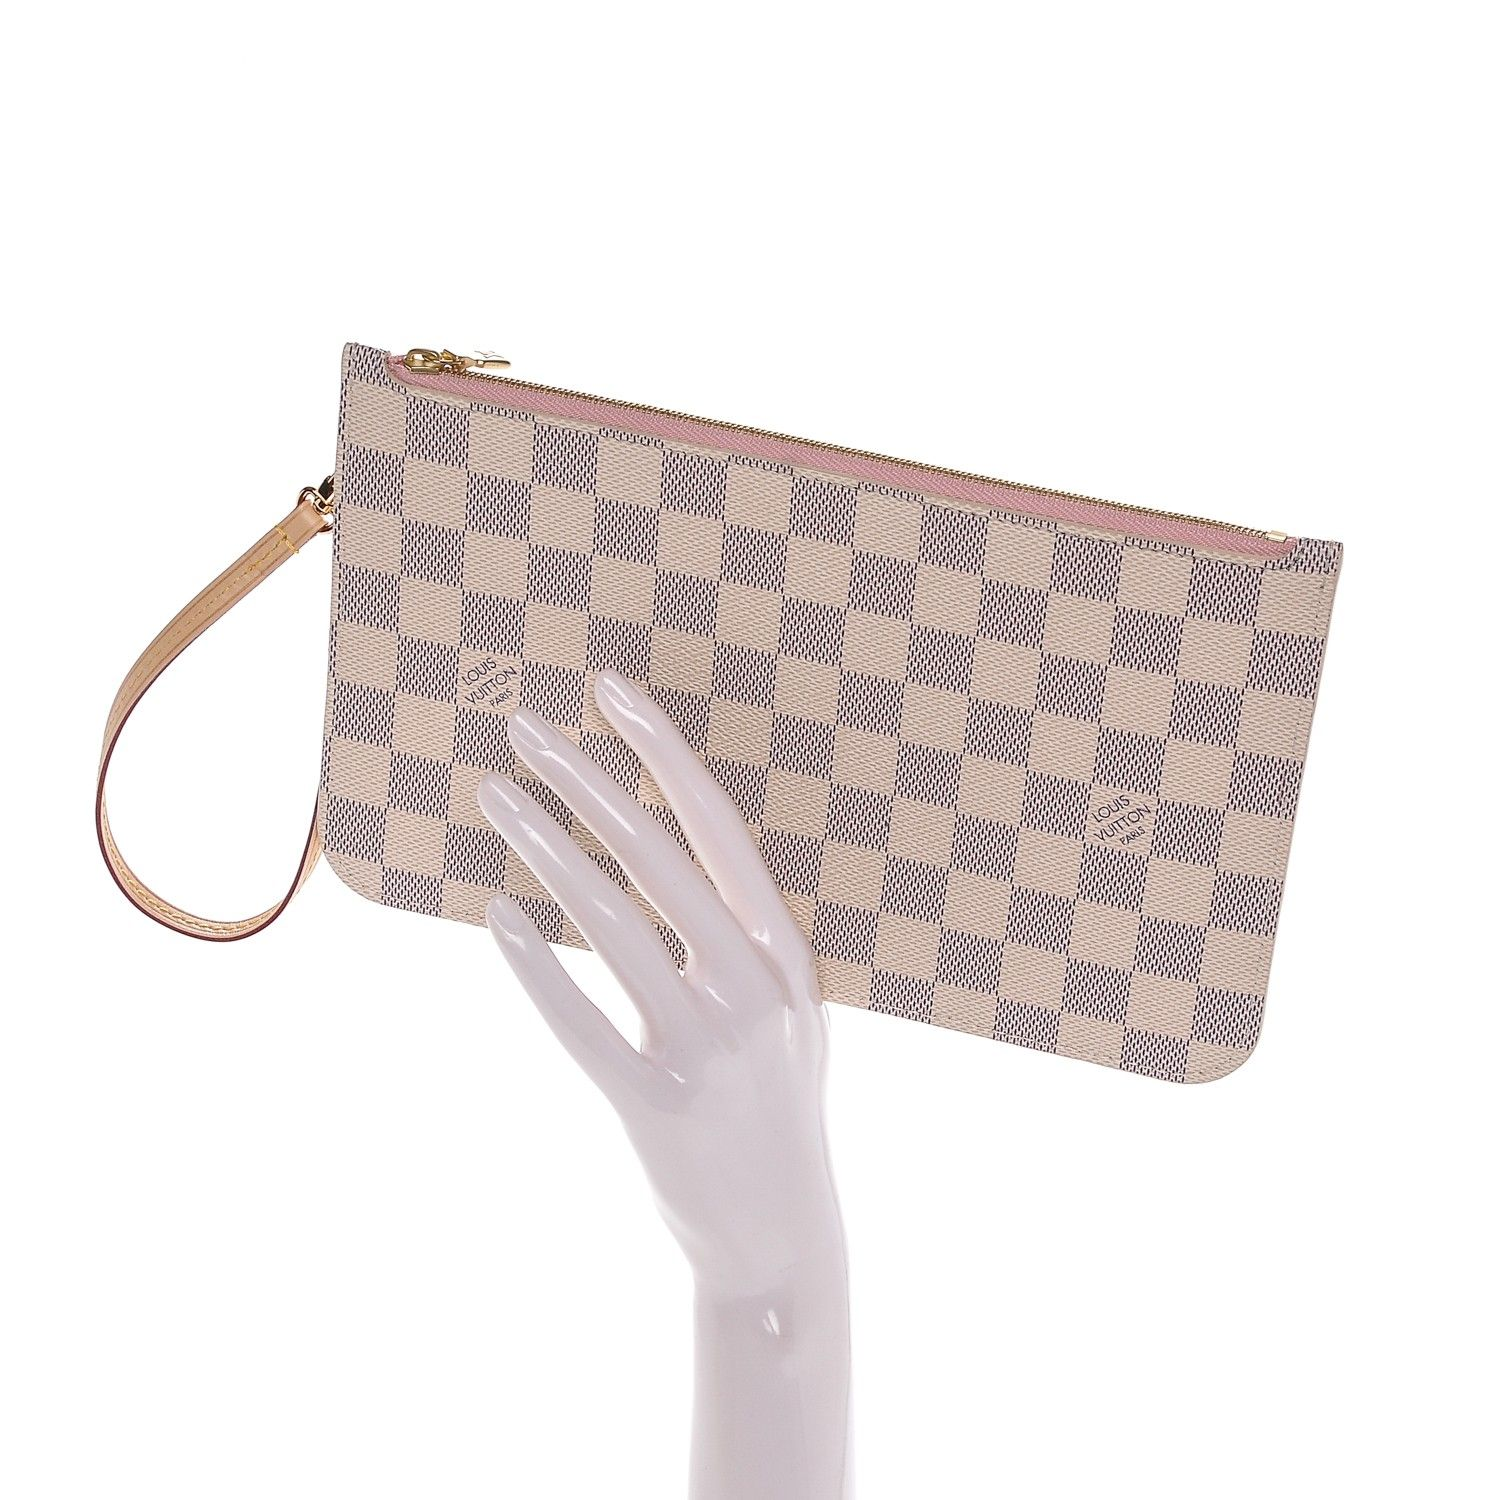 9bc95a0b822d This an authentic LOUIS VUITTON Damier Azur Neverfull MM GM Pochette in  Rose Ballerine. This